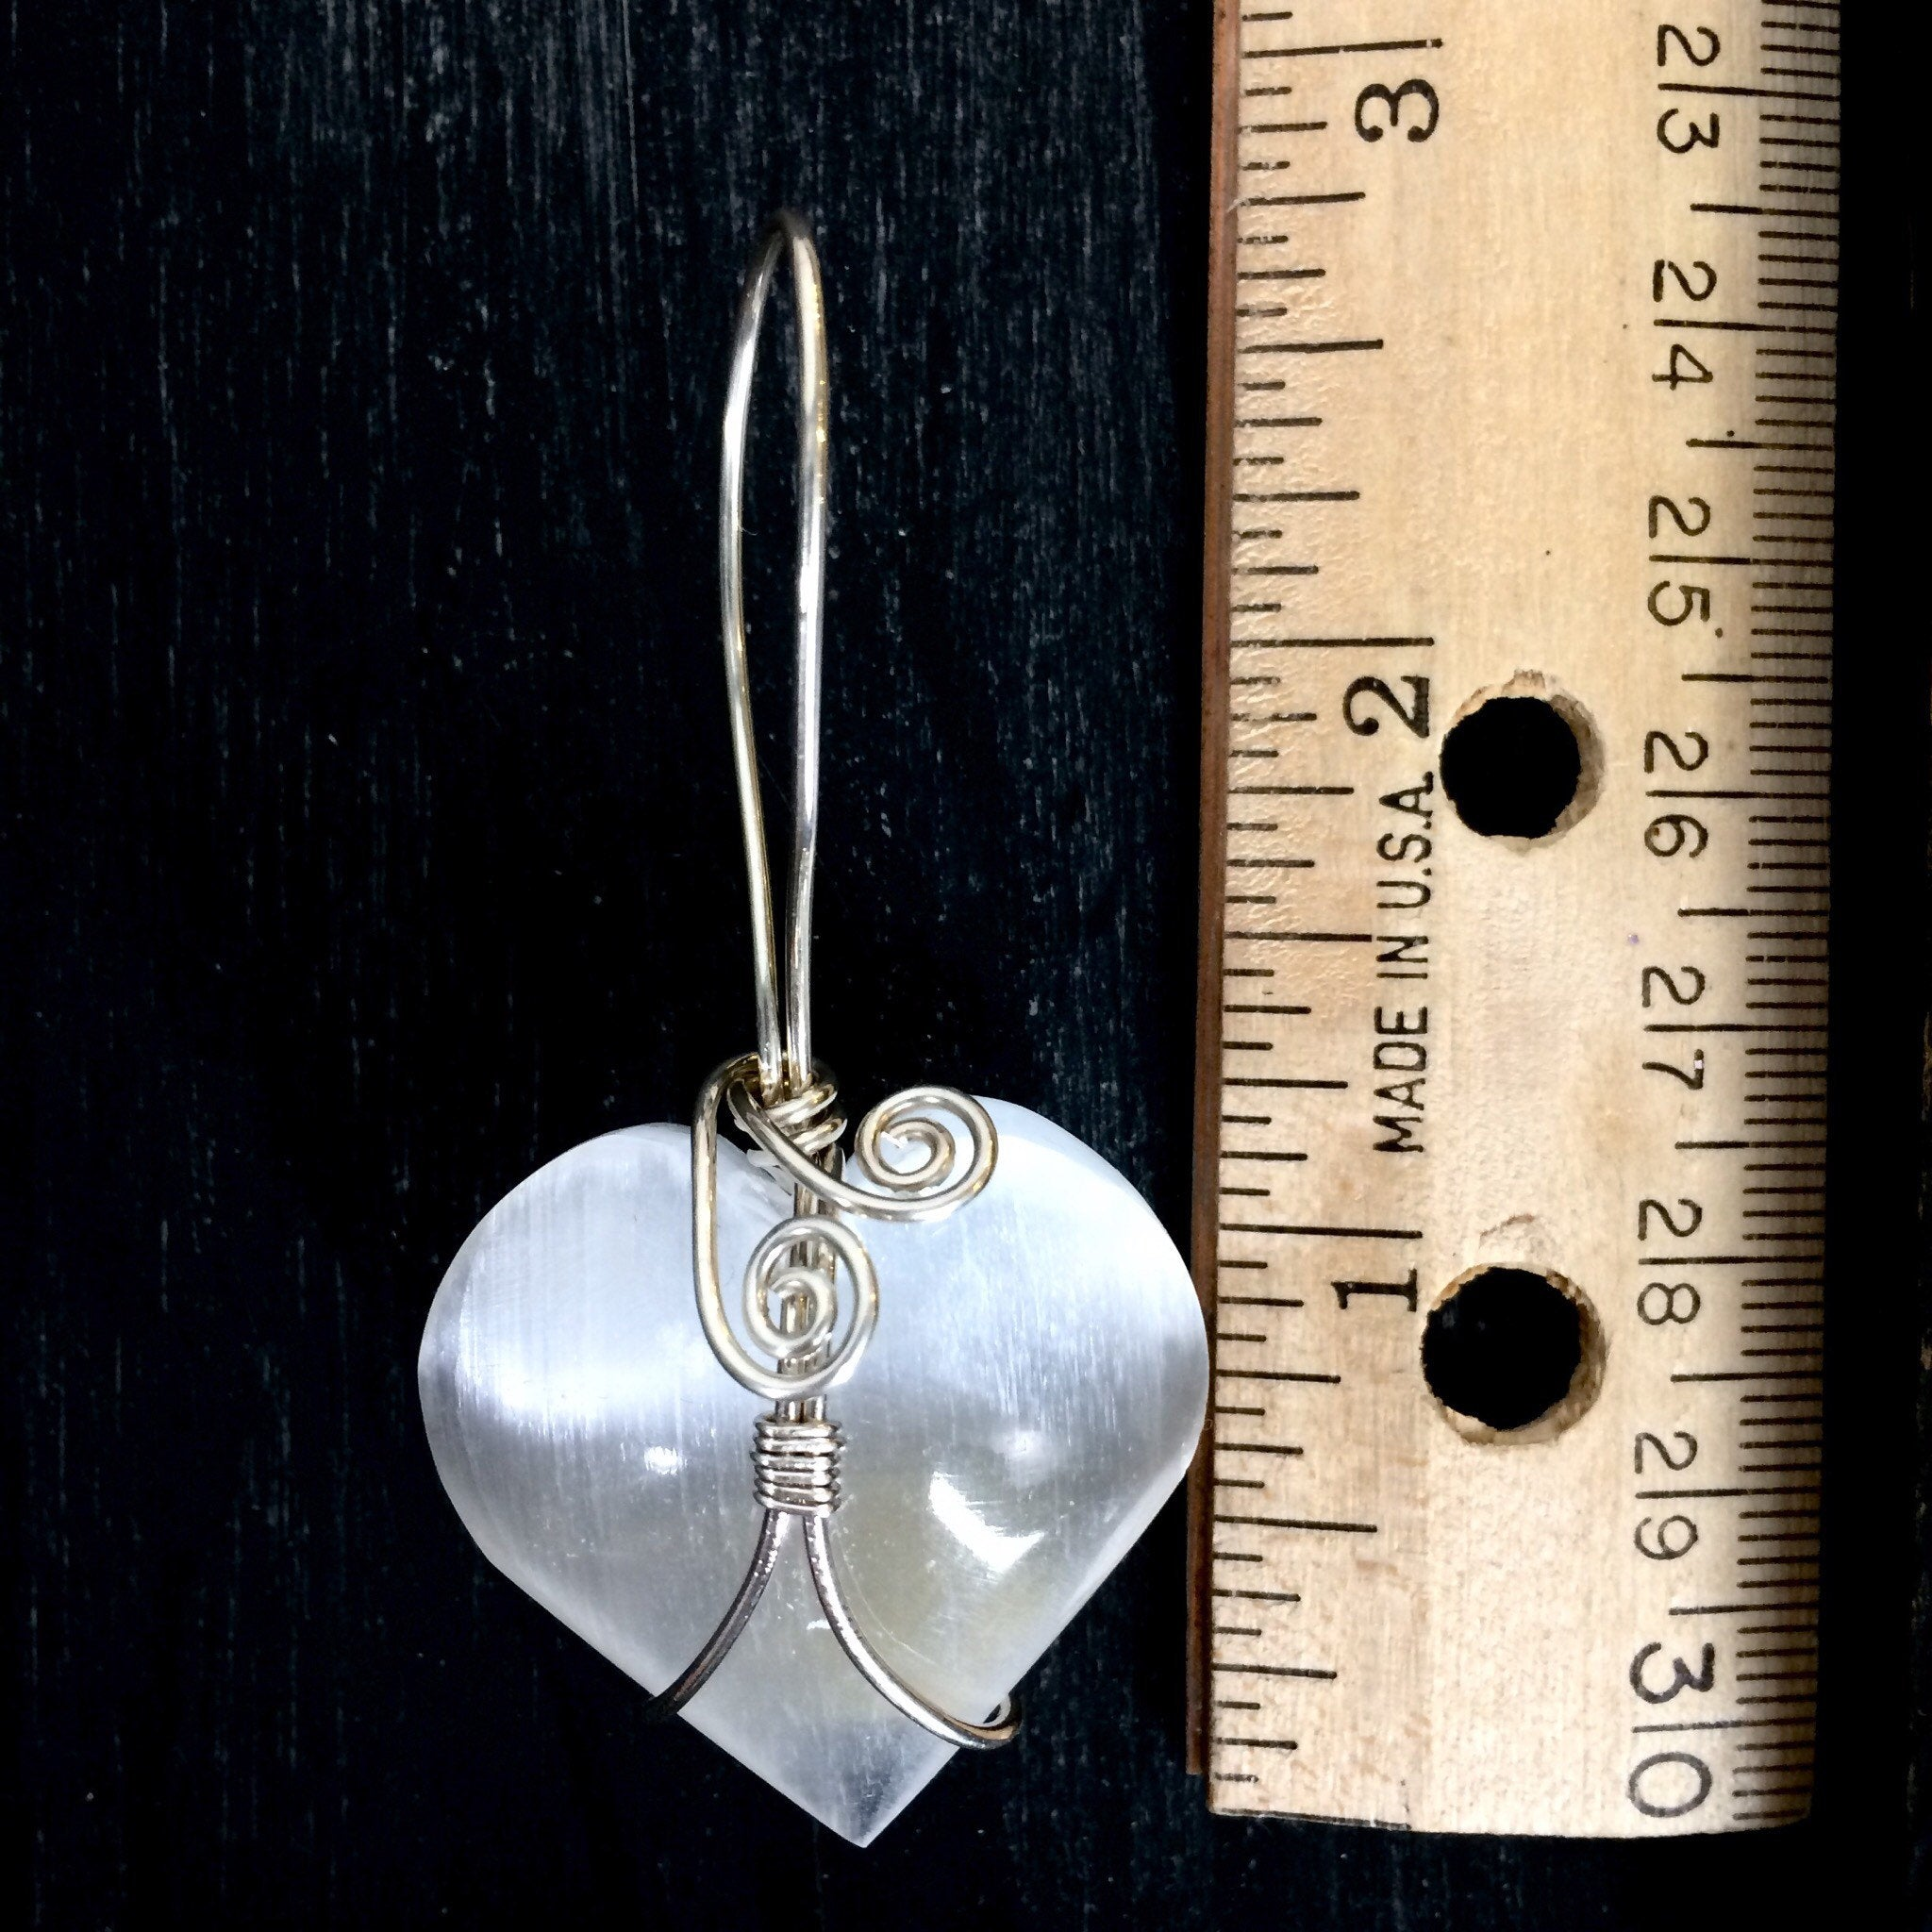 Sterling Silver Filled White Selenite Crystal Heart Pendant Necklace 2019 Love n Light Collection - claritycove.com